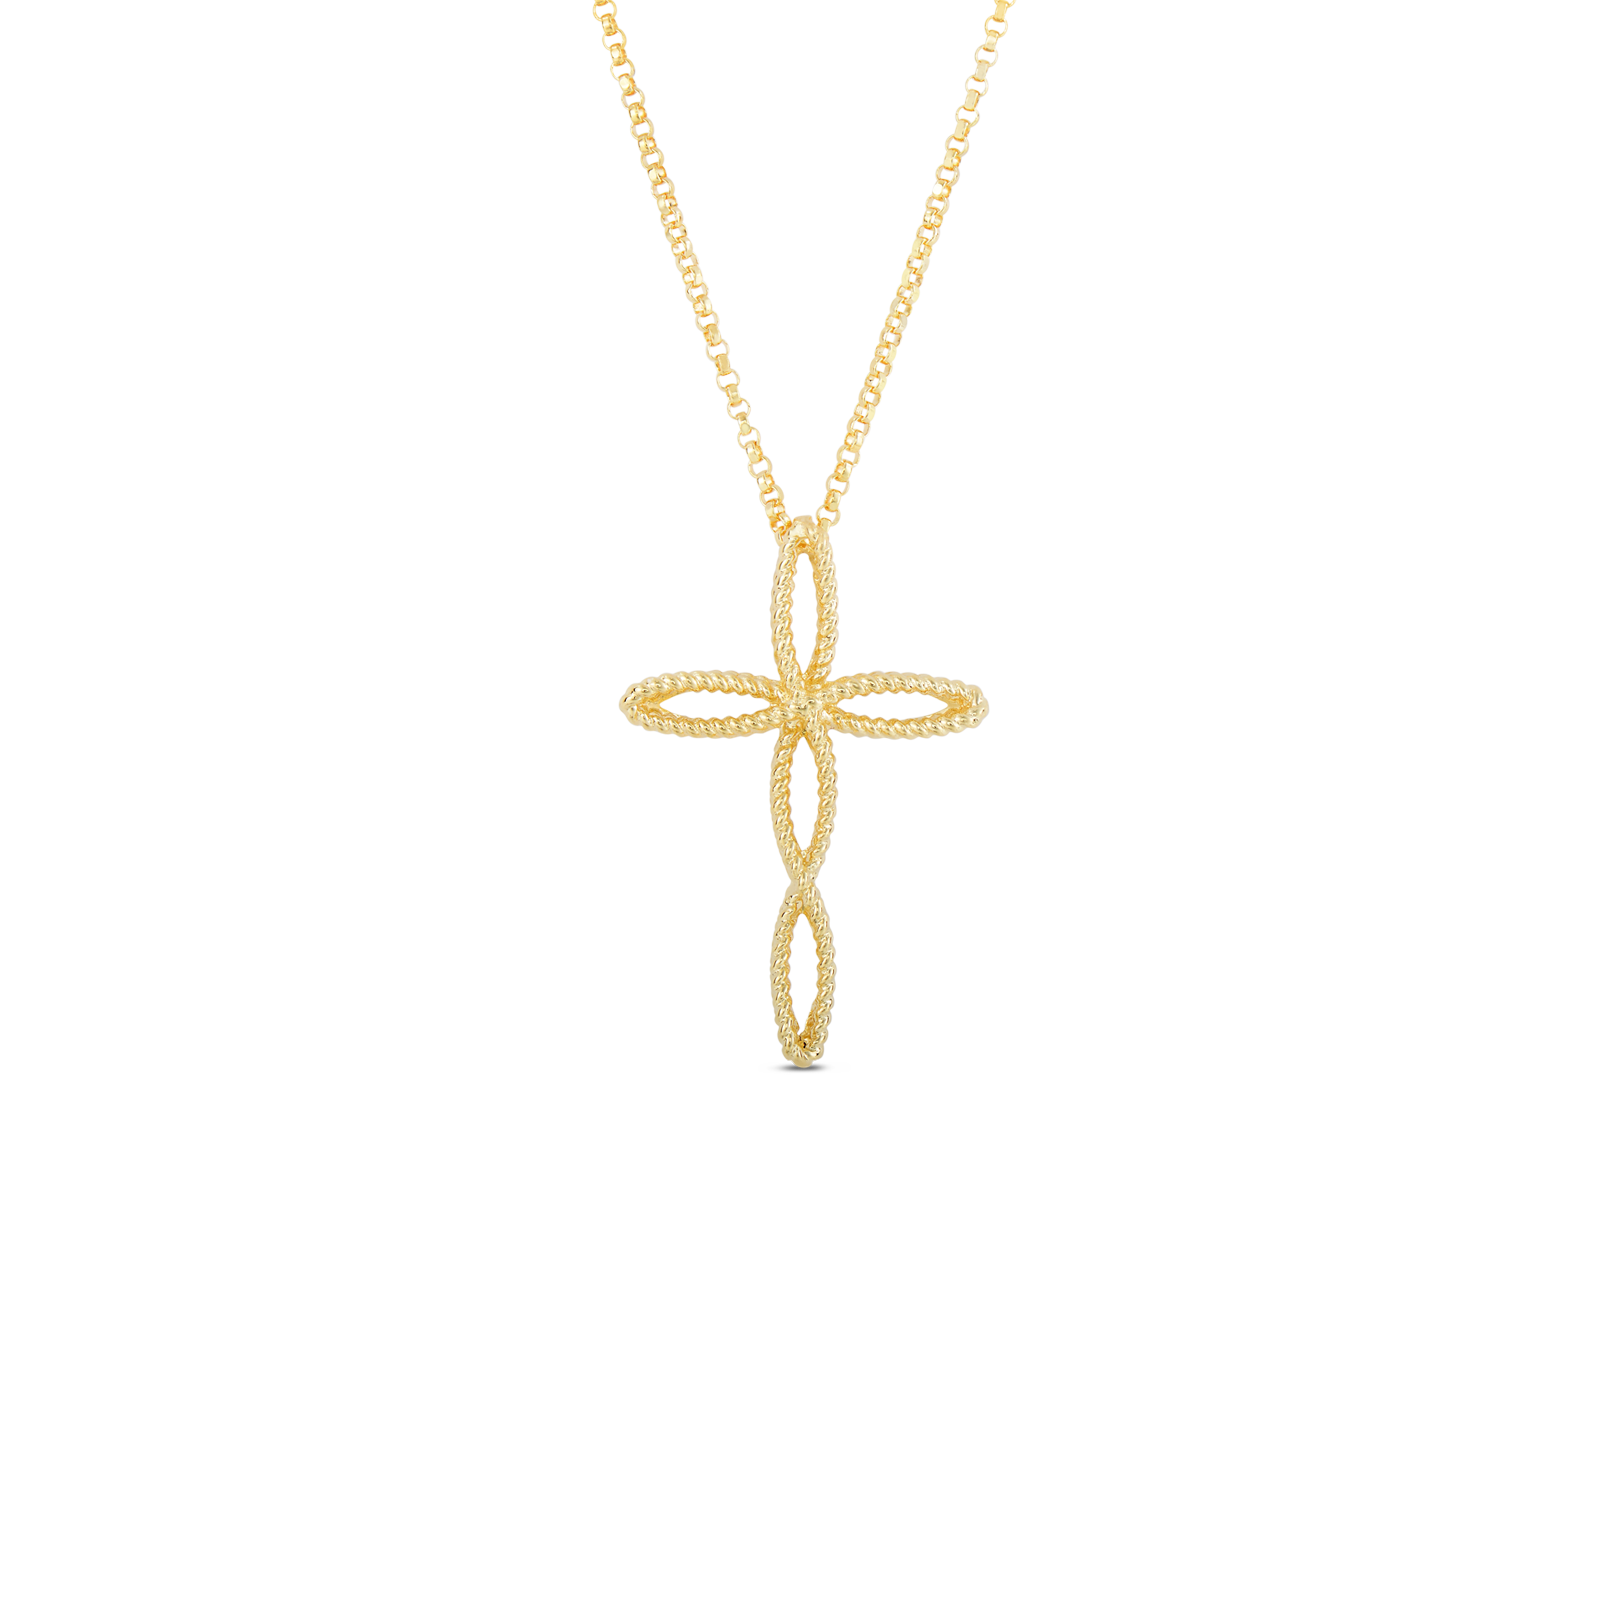 Italian gold cross pendant by roberto coin in new barocco roberto coin barocco 18k yellow gold cross pendant aloadofball